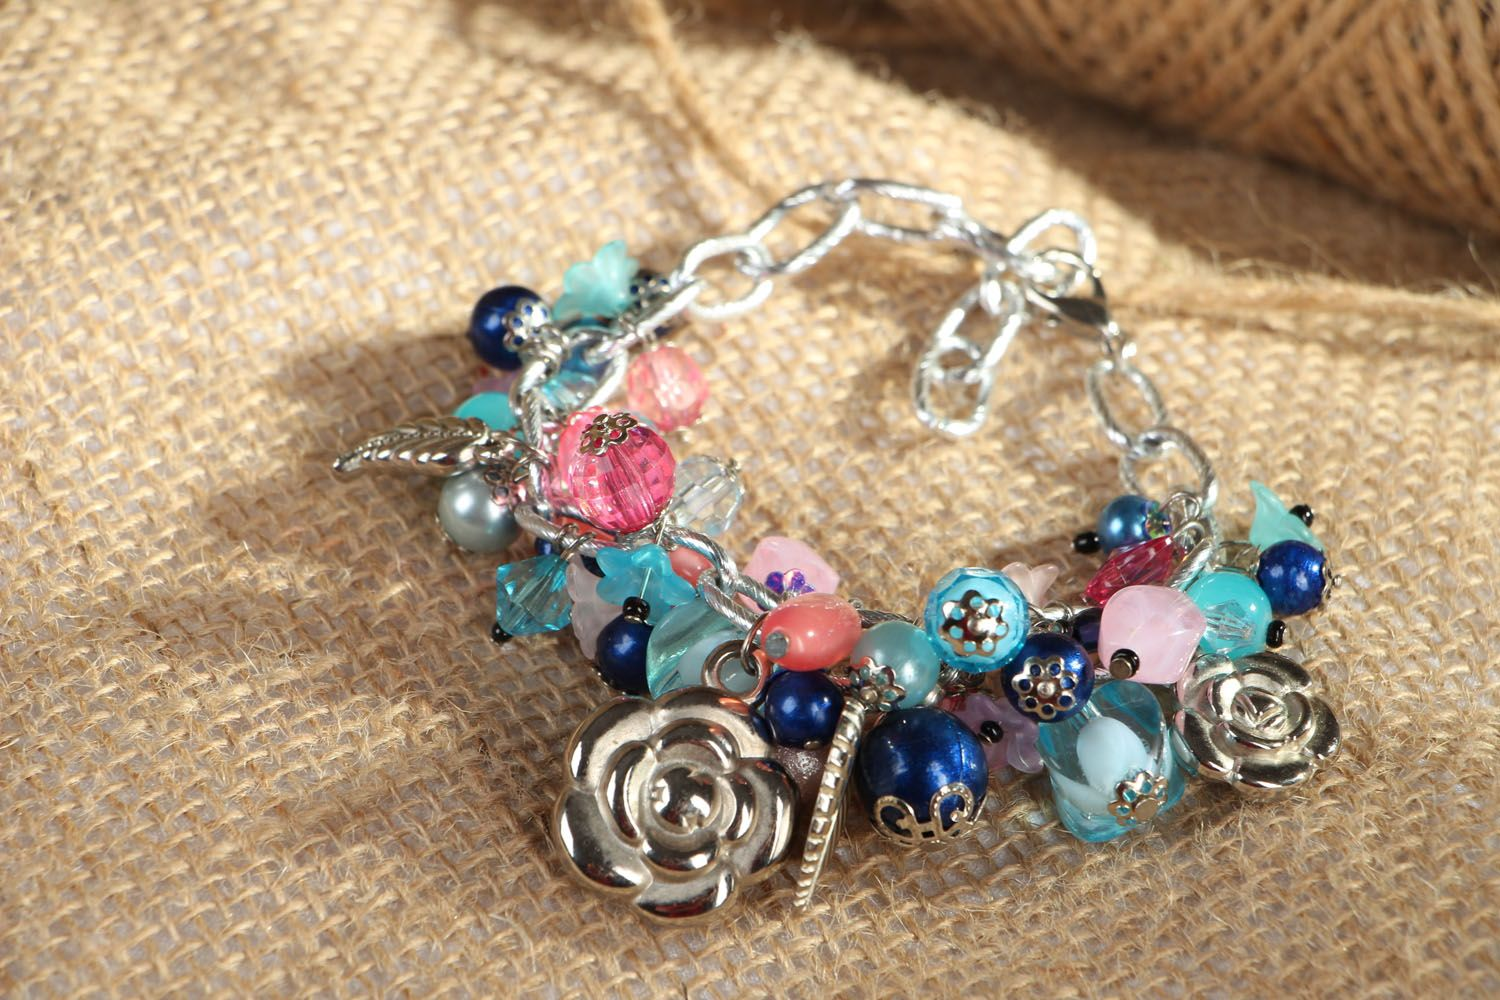 Bracelet with charms photo 4